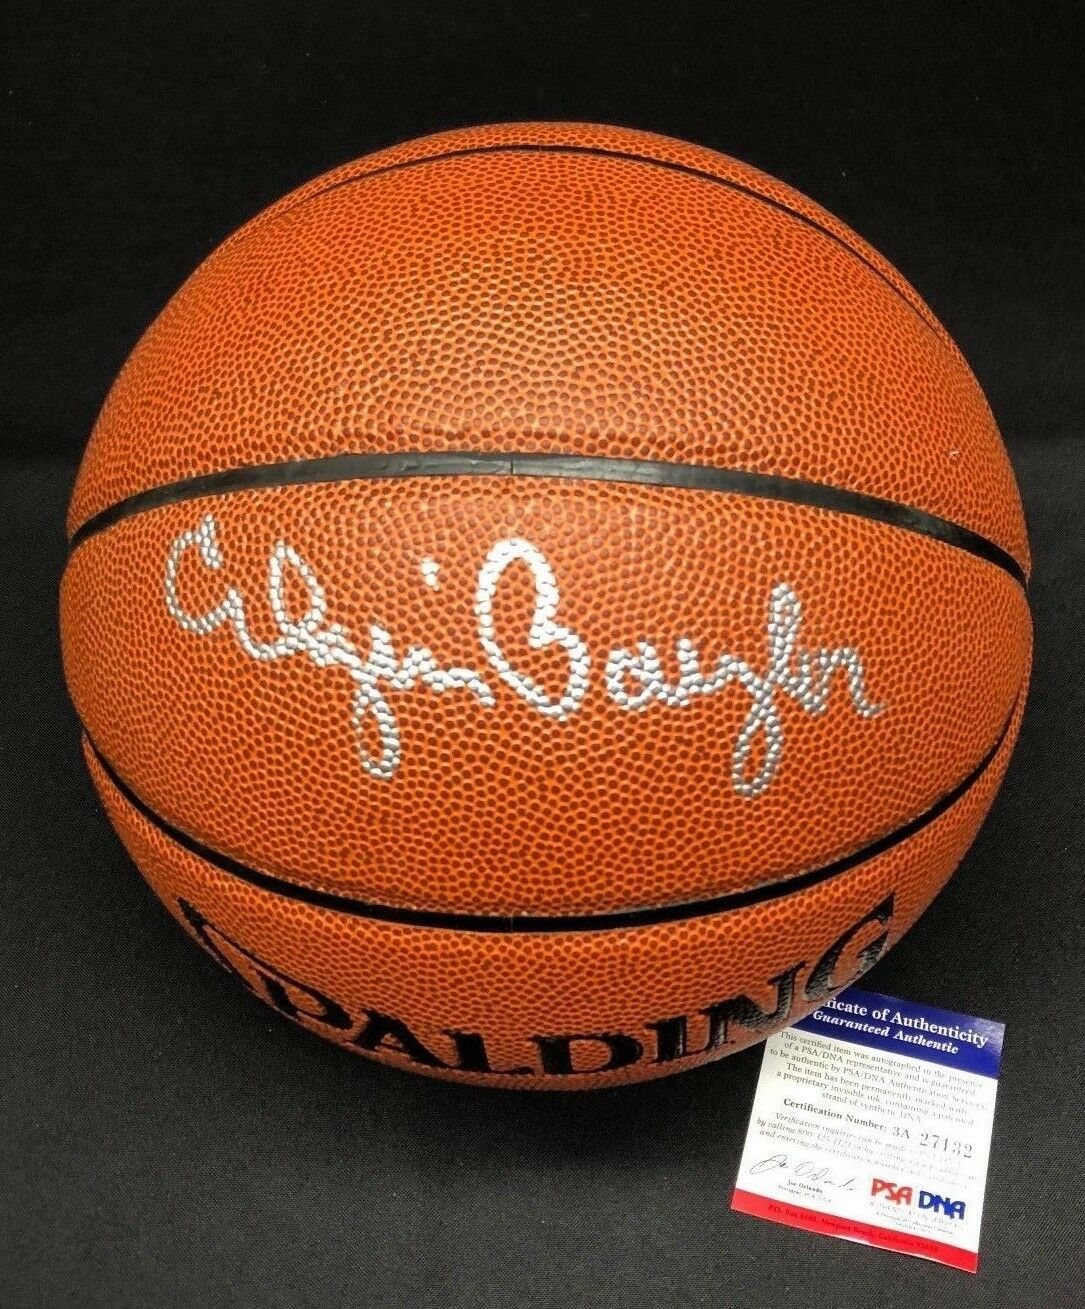 Elgin Baylor Signed Spalding I/O Basketball *Lakers HOF PSA 3A27132